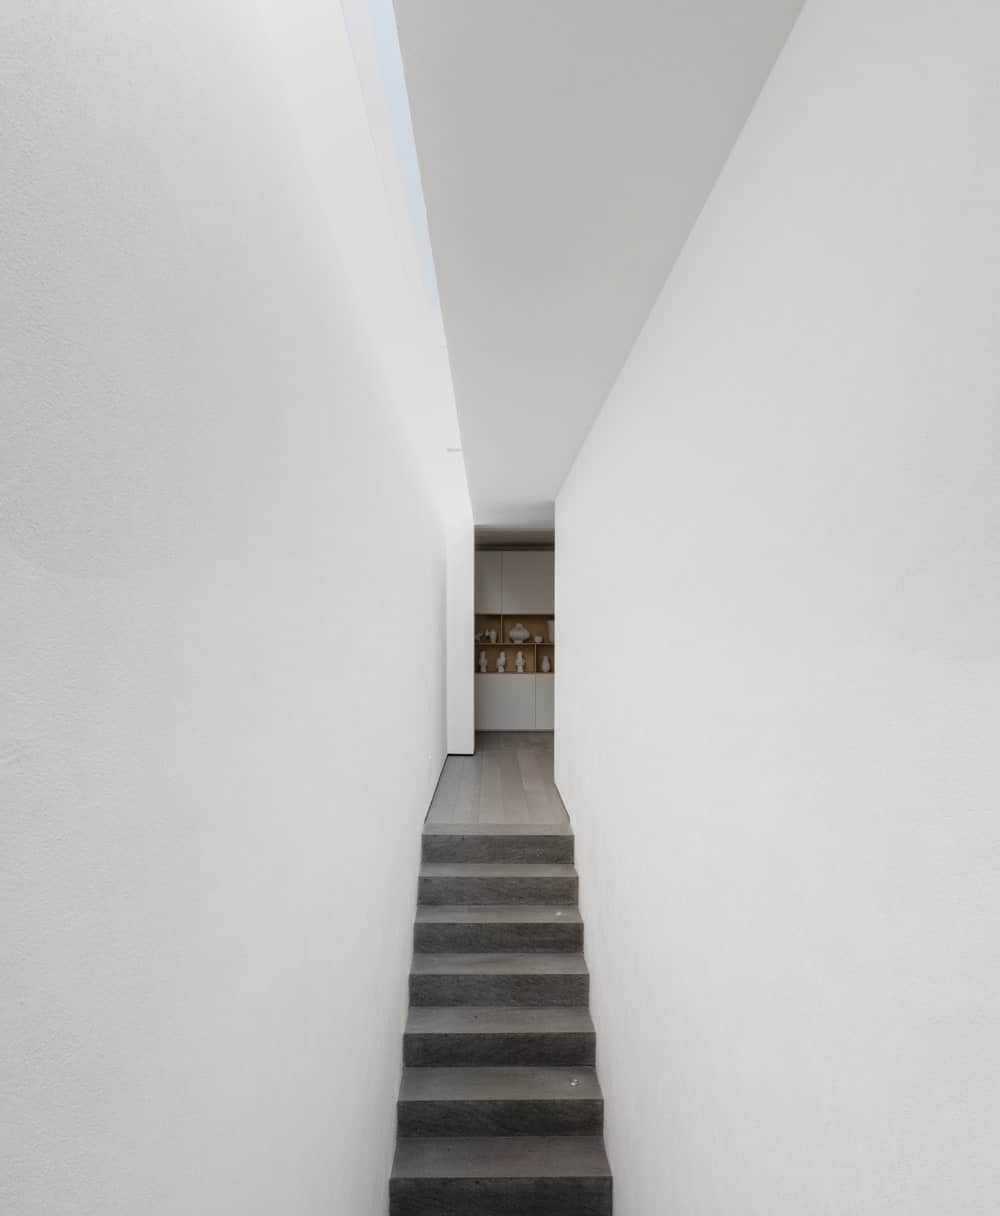 Staircase in the Gama Issa v2.0 designed by studio mk27.